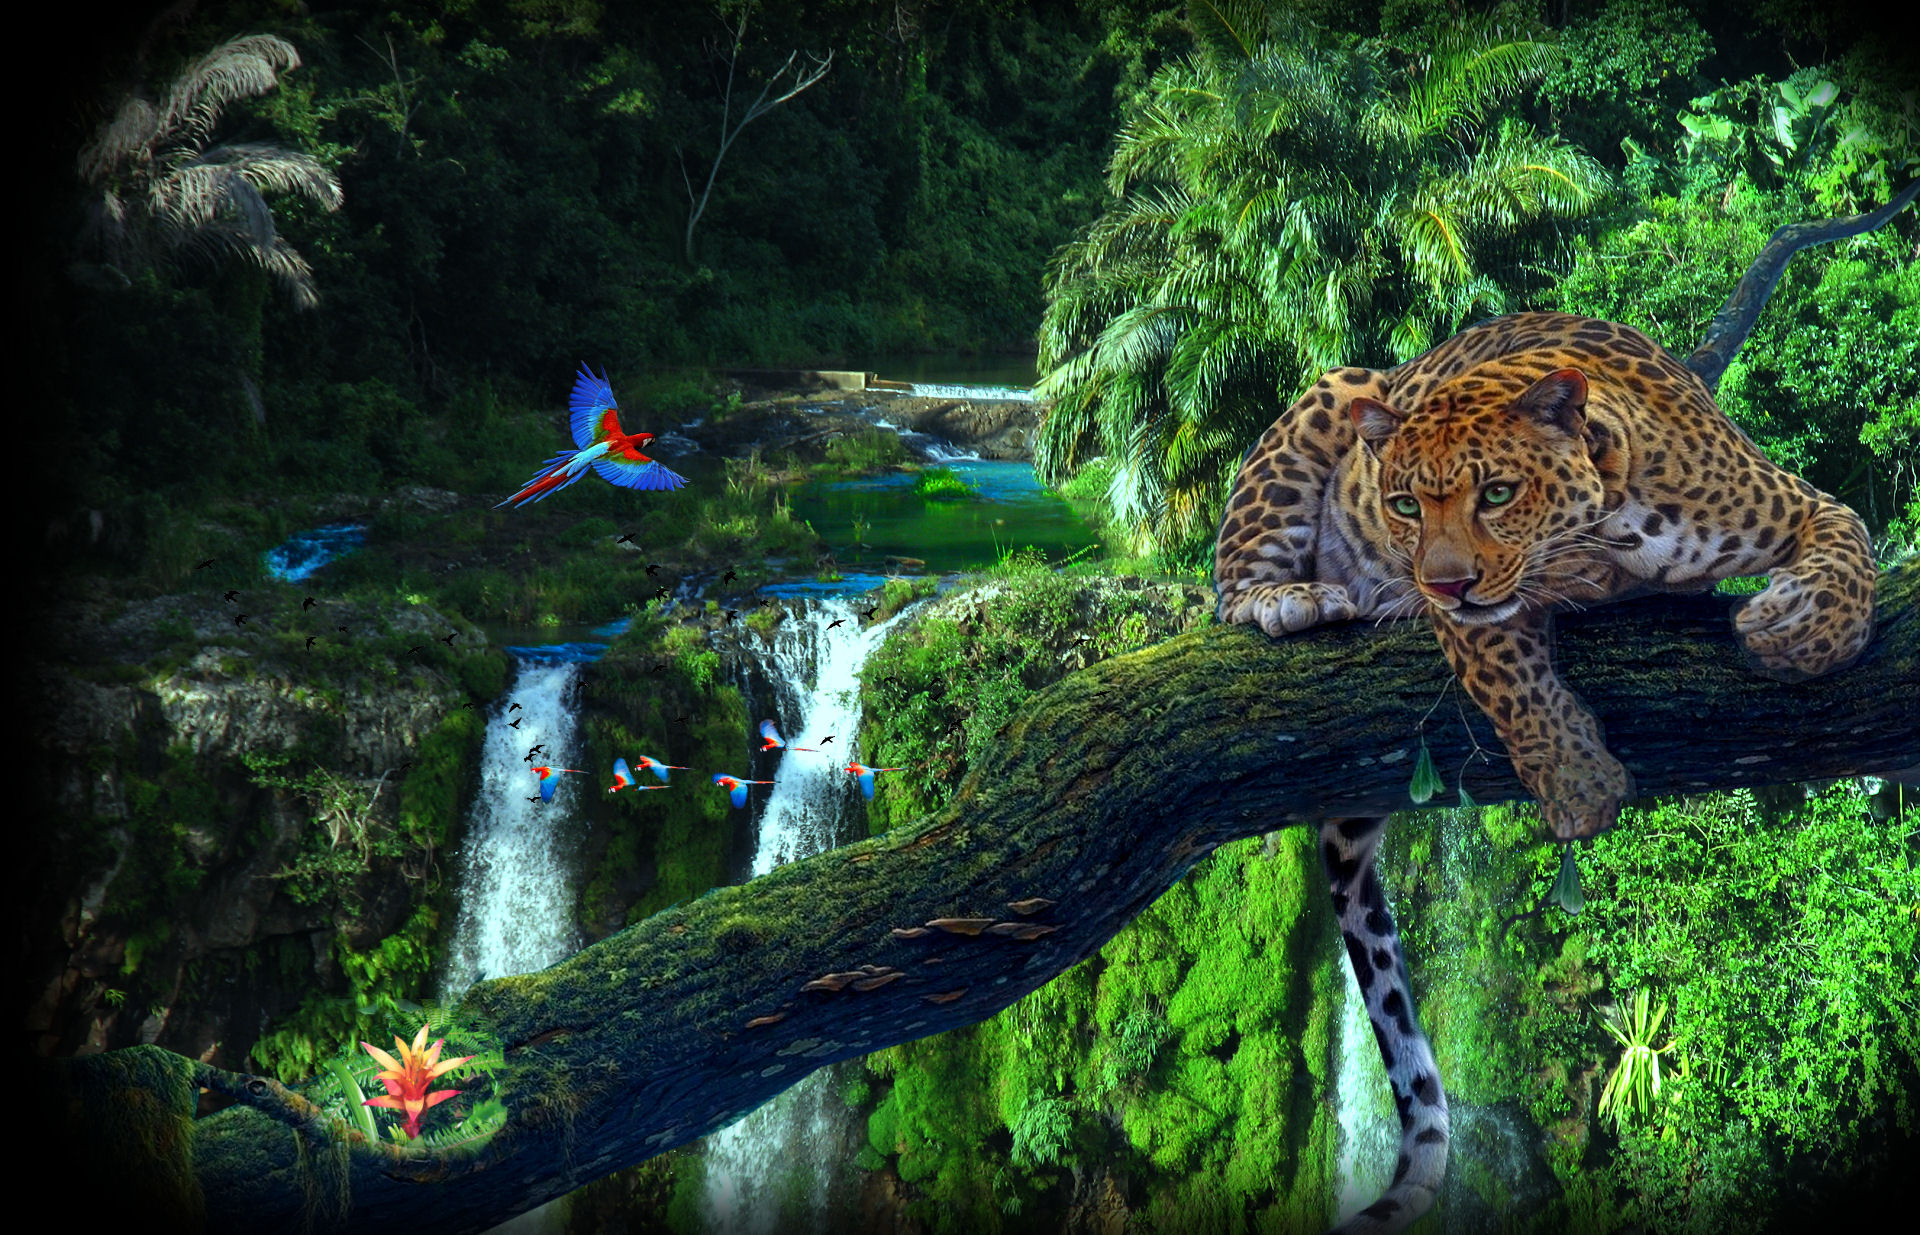 rainforest animal wallpaper pictures - photo #44